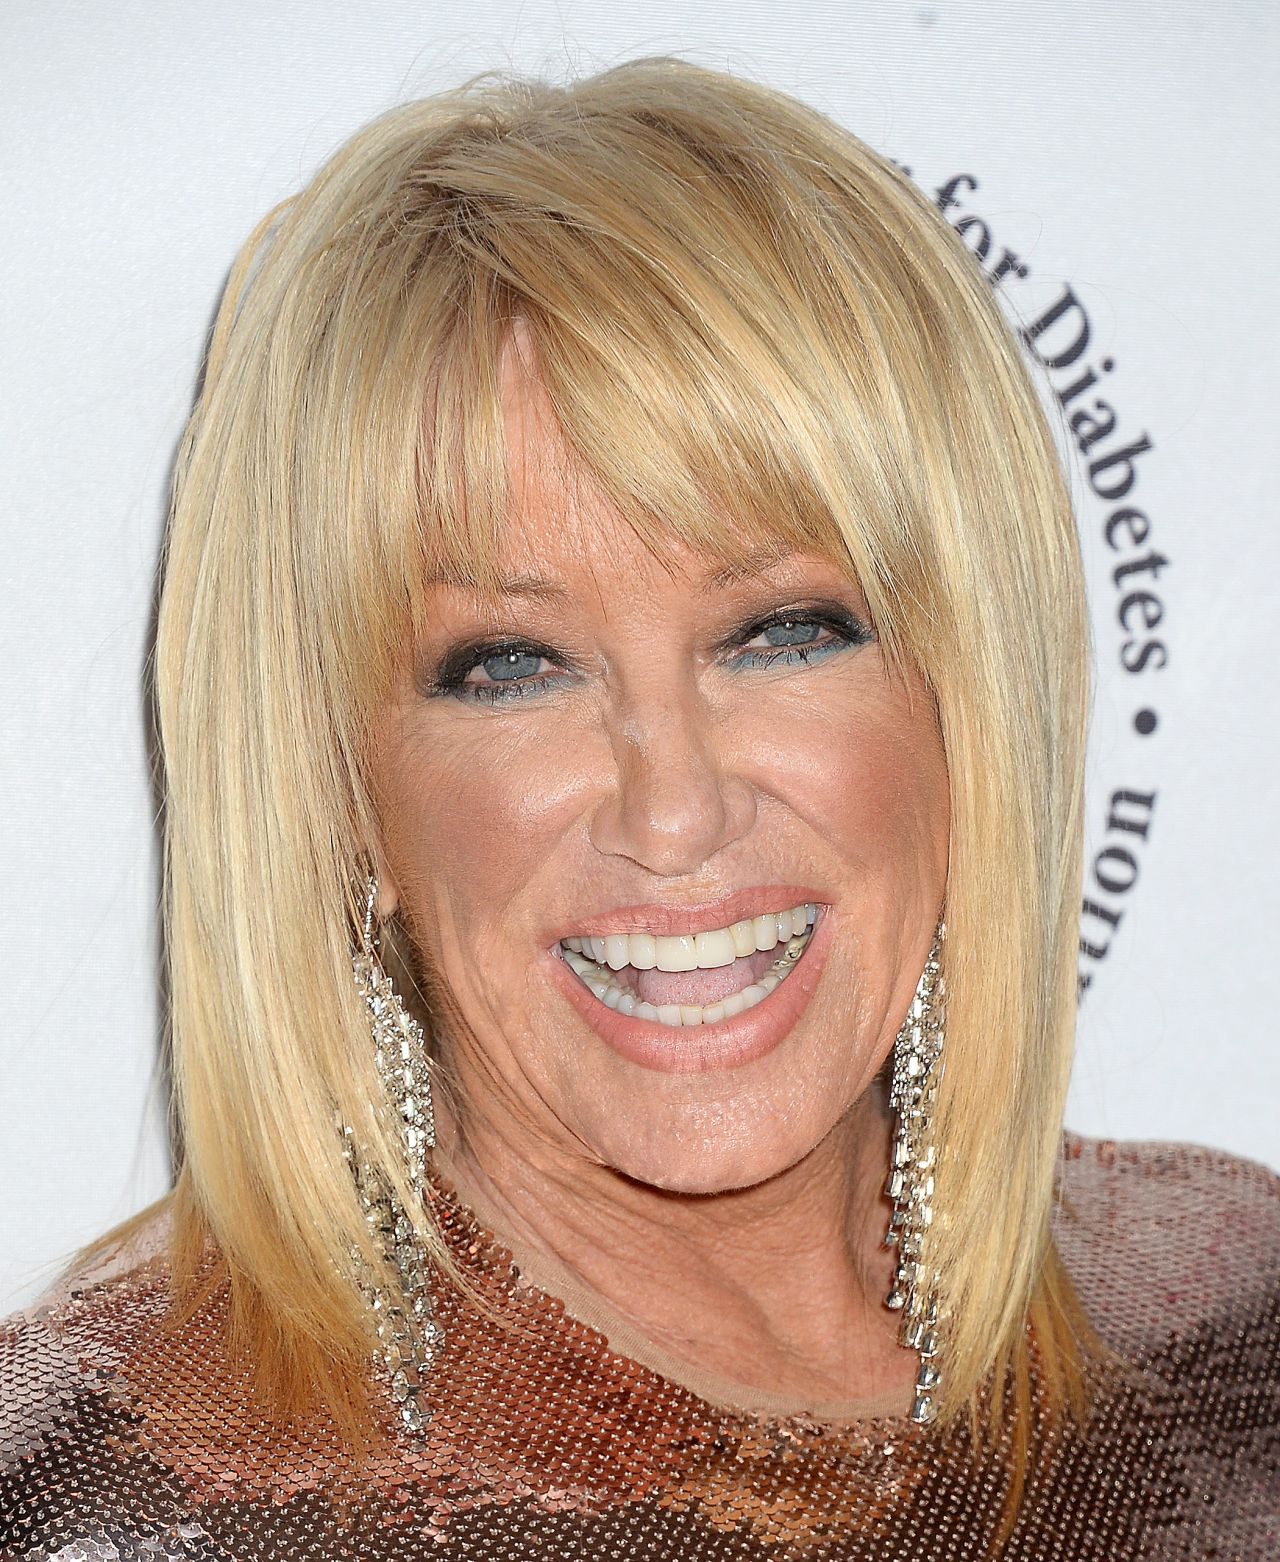 You are Suzanne somers facial was vicious